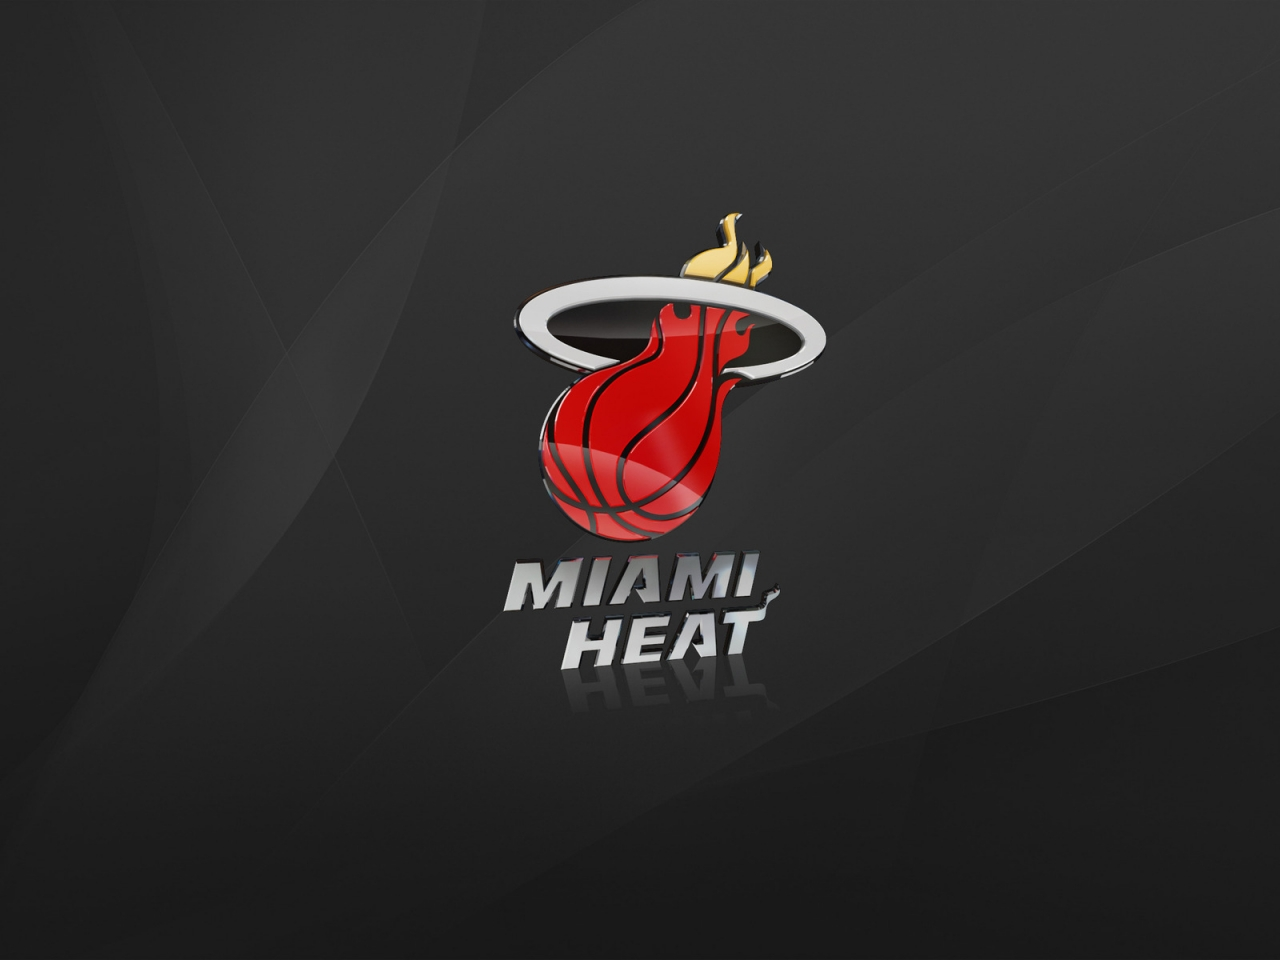 Miami Heat for 1280 x 960 resolution